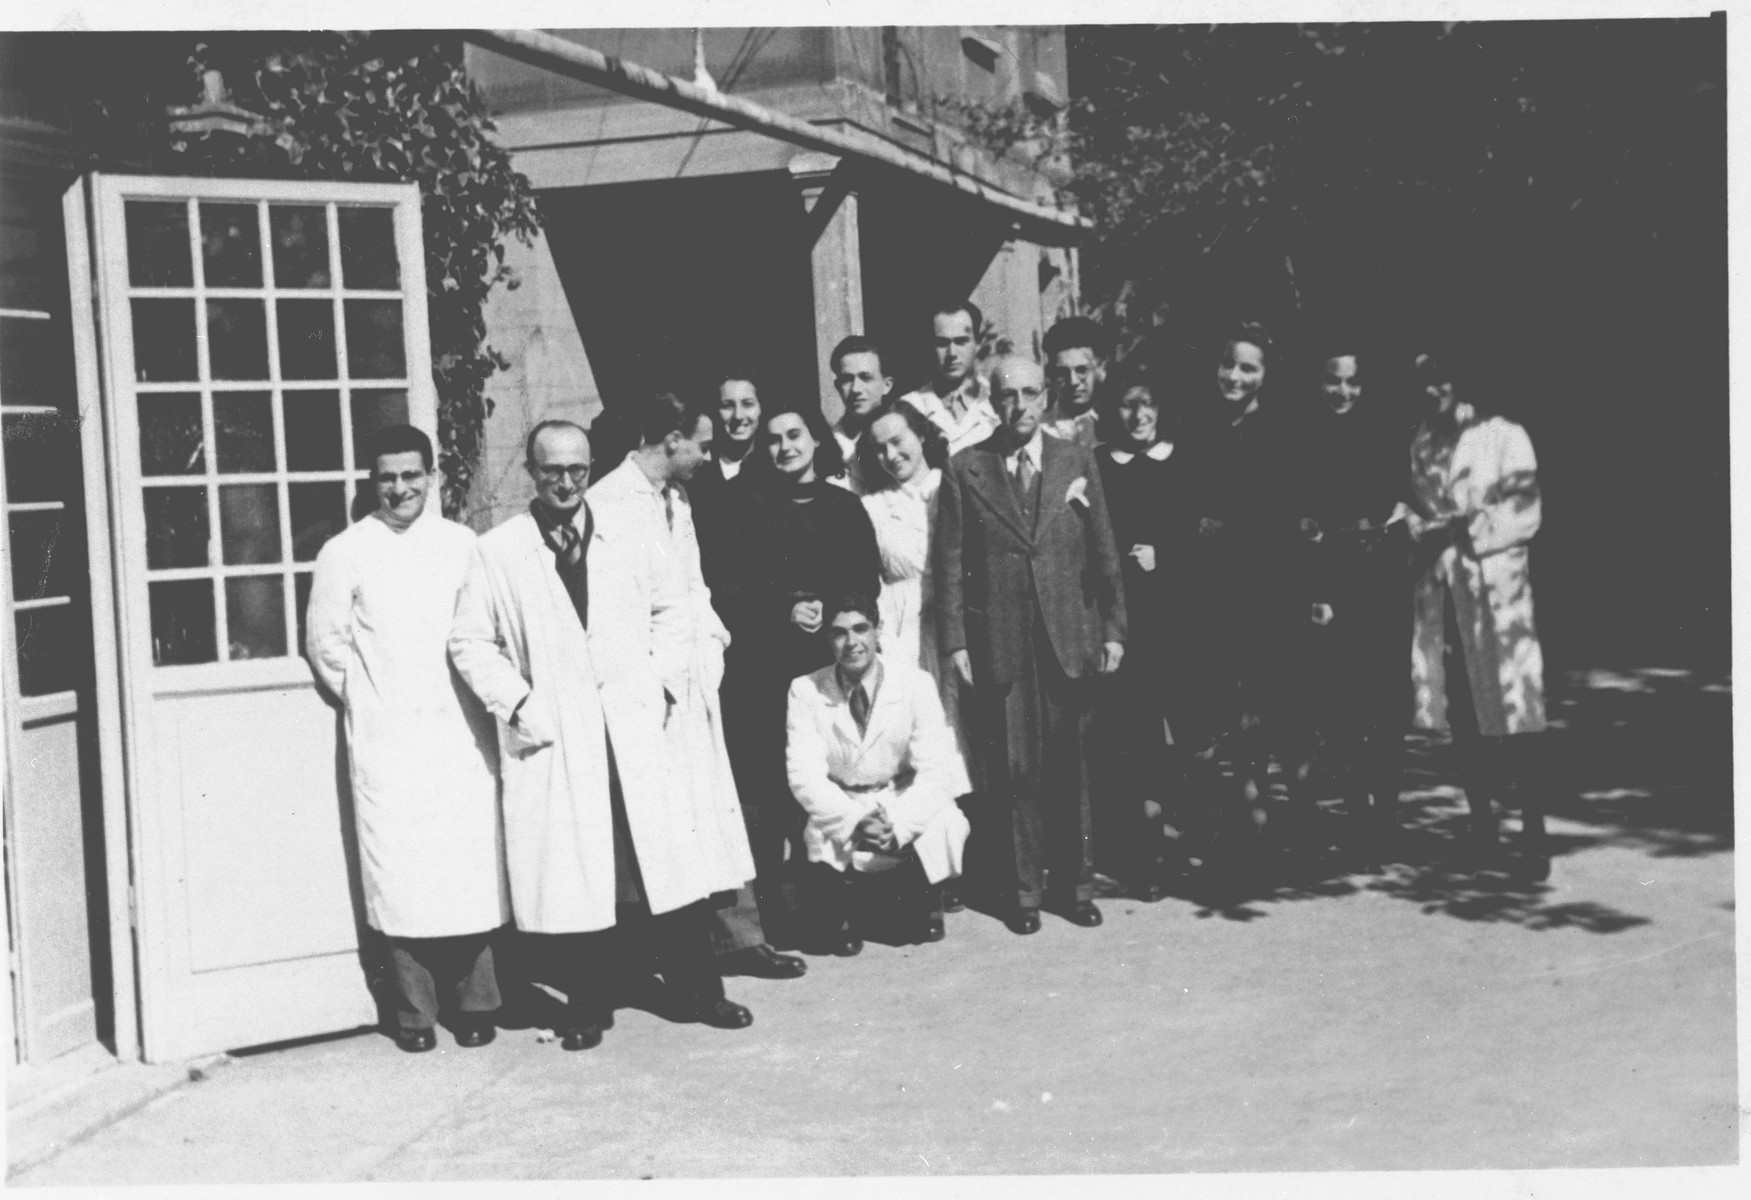 Students and faculty of the chemistry department of the Jewish high school in Milan stand in the school's courtyard.